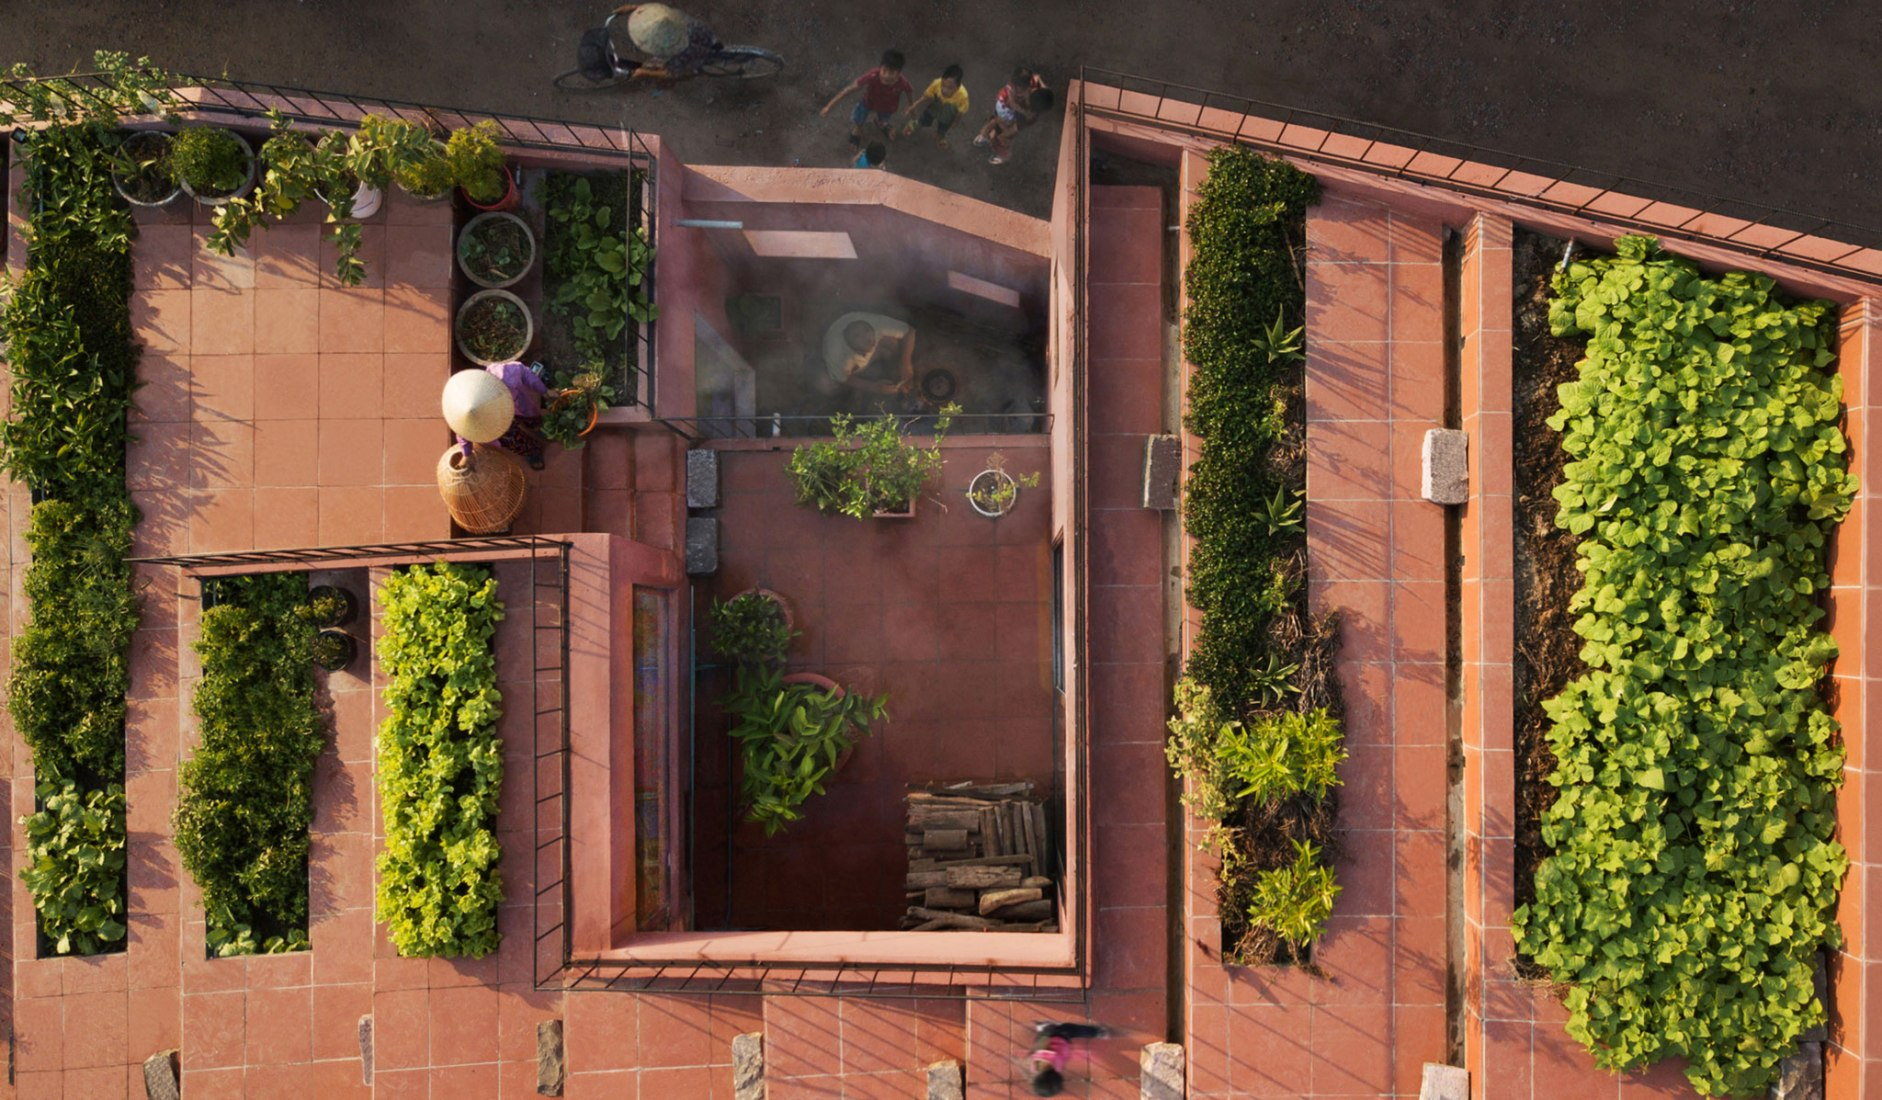 Stepped Rooftop Creates Space For Urban Farming In Vietnam